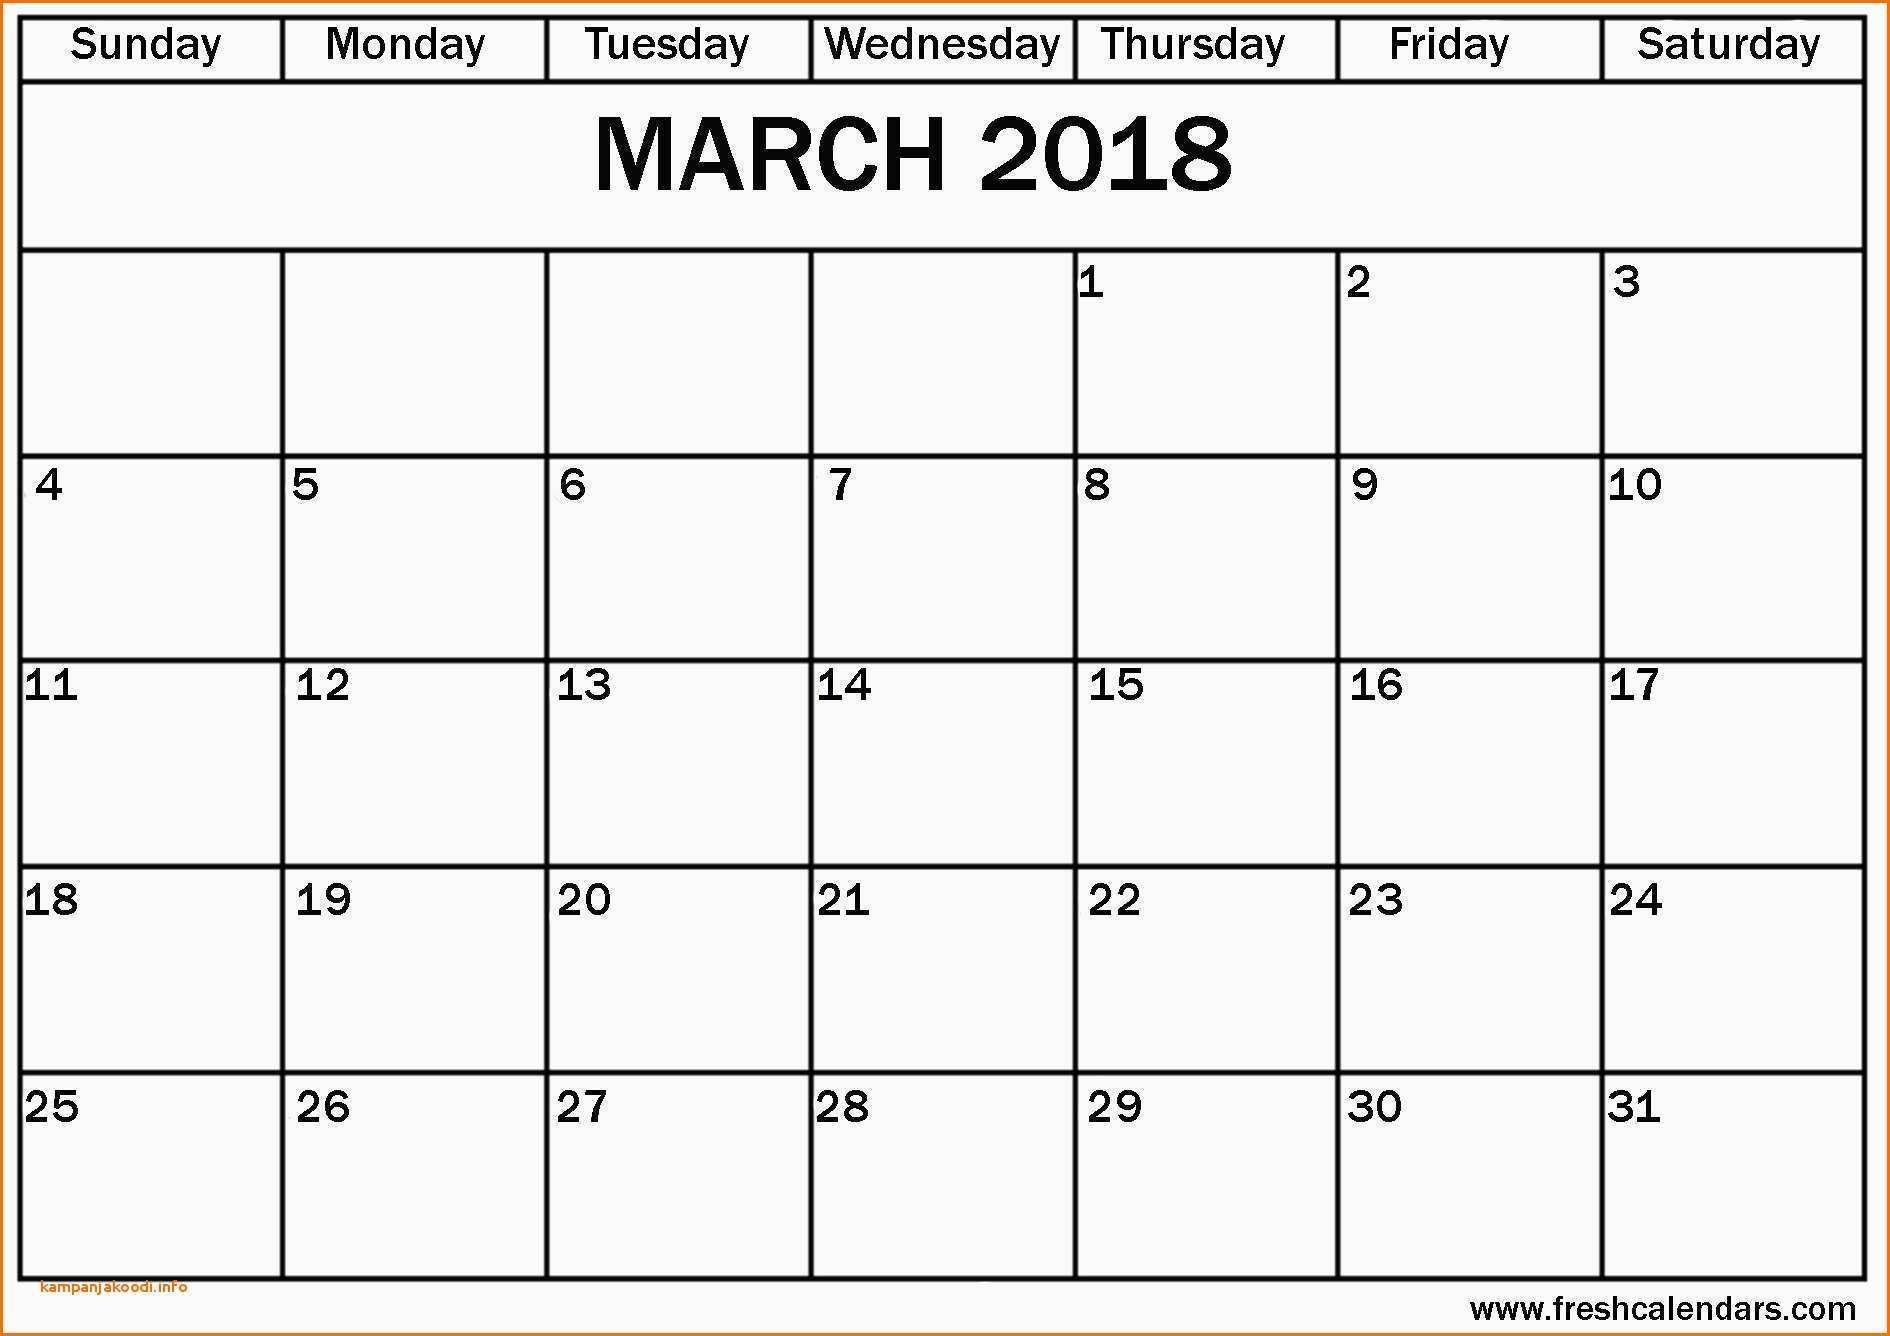 March Calendar Kids Más Actual Calendar Children S Birthday Invitations Lovely Children 26 Of March Calendar Kids Actual Powerpoint Template for Kids top Calendar Powerpoint Template Ppt 0d